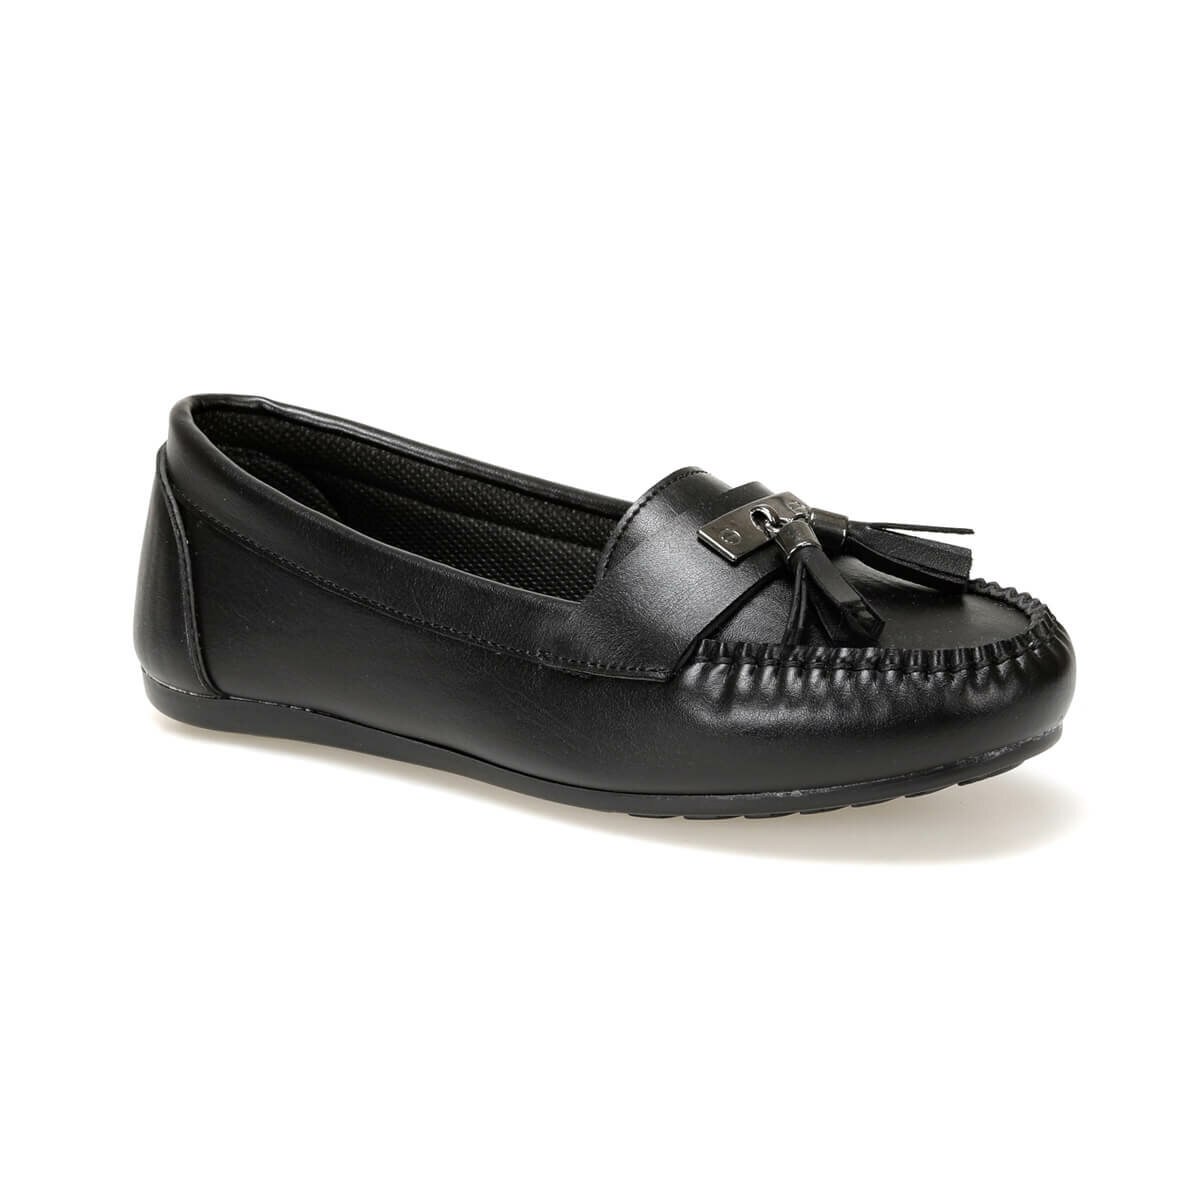 FLO DW19008 Black Women Loafer Shoes Miss F